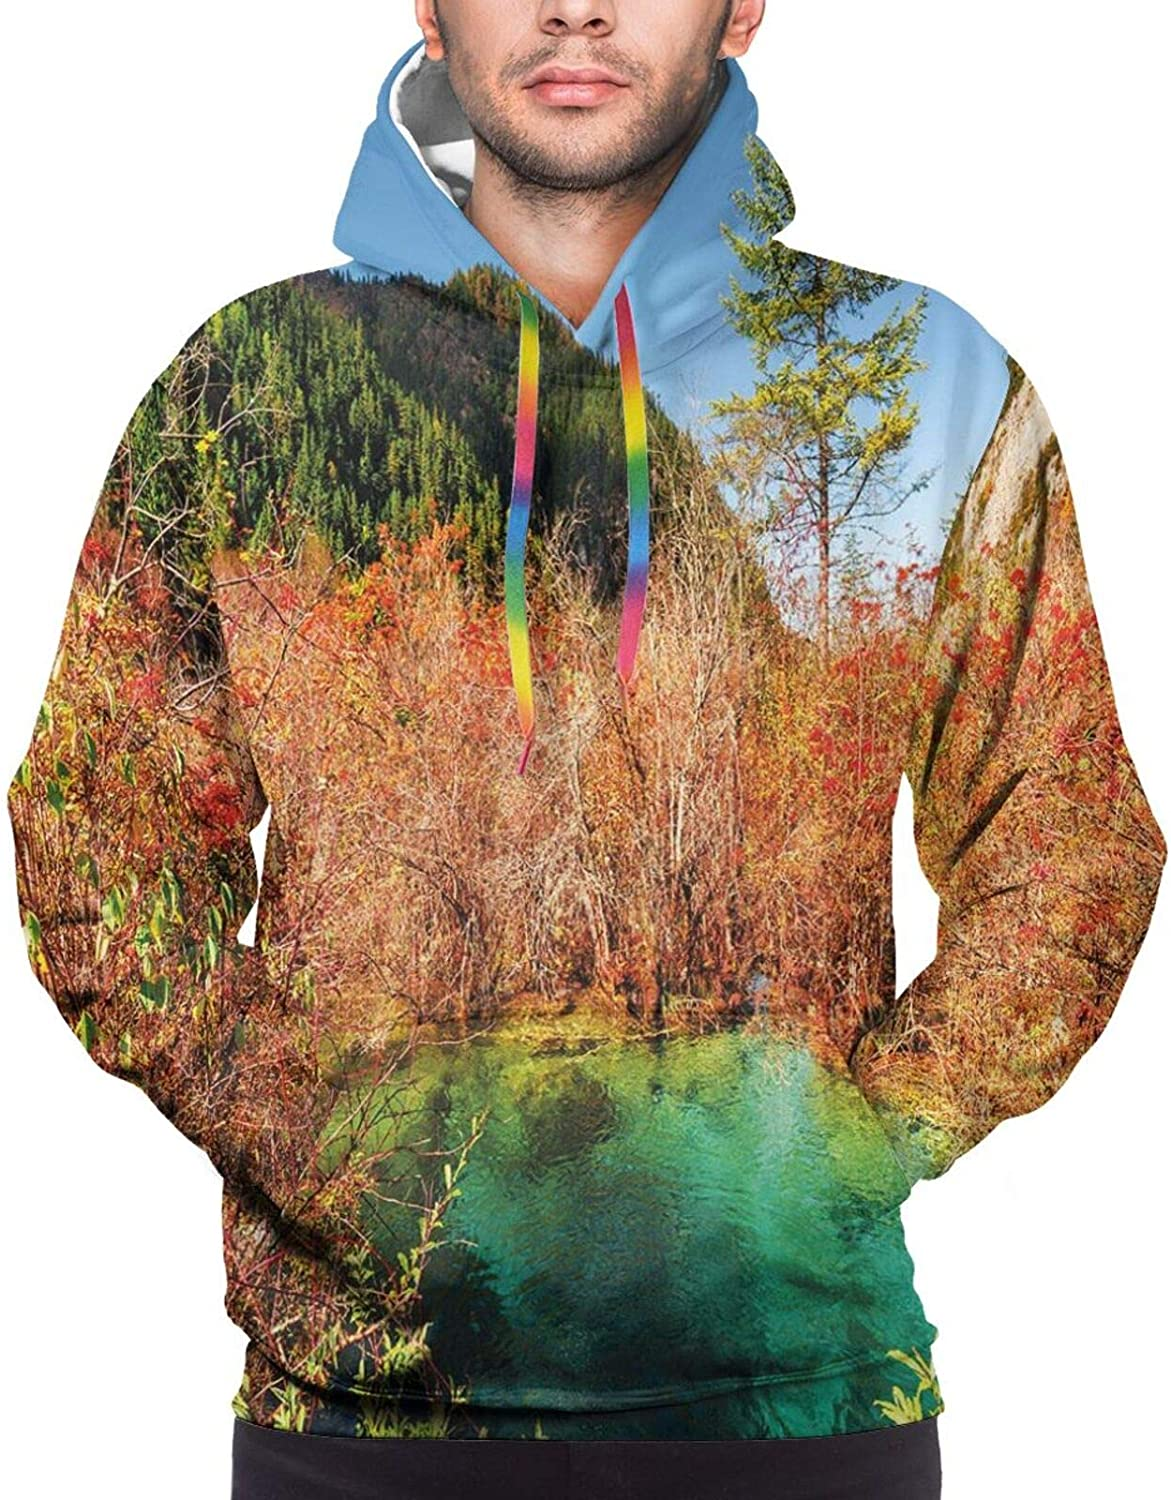 Men's Hoodies Sweatshirts,Idyllic Fall Landscape with A Creek Among The Forest in National Park Valley Art